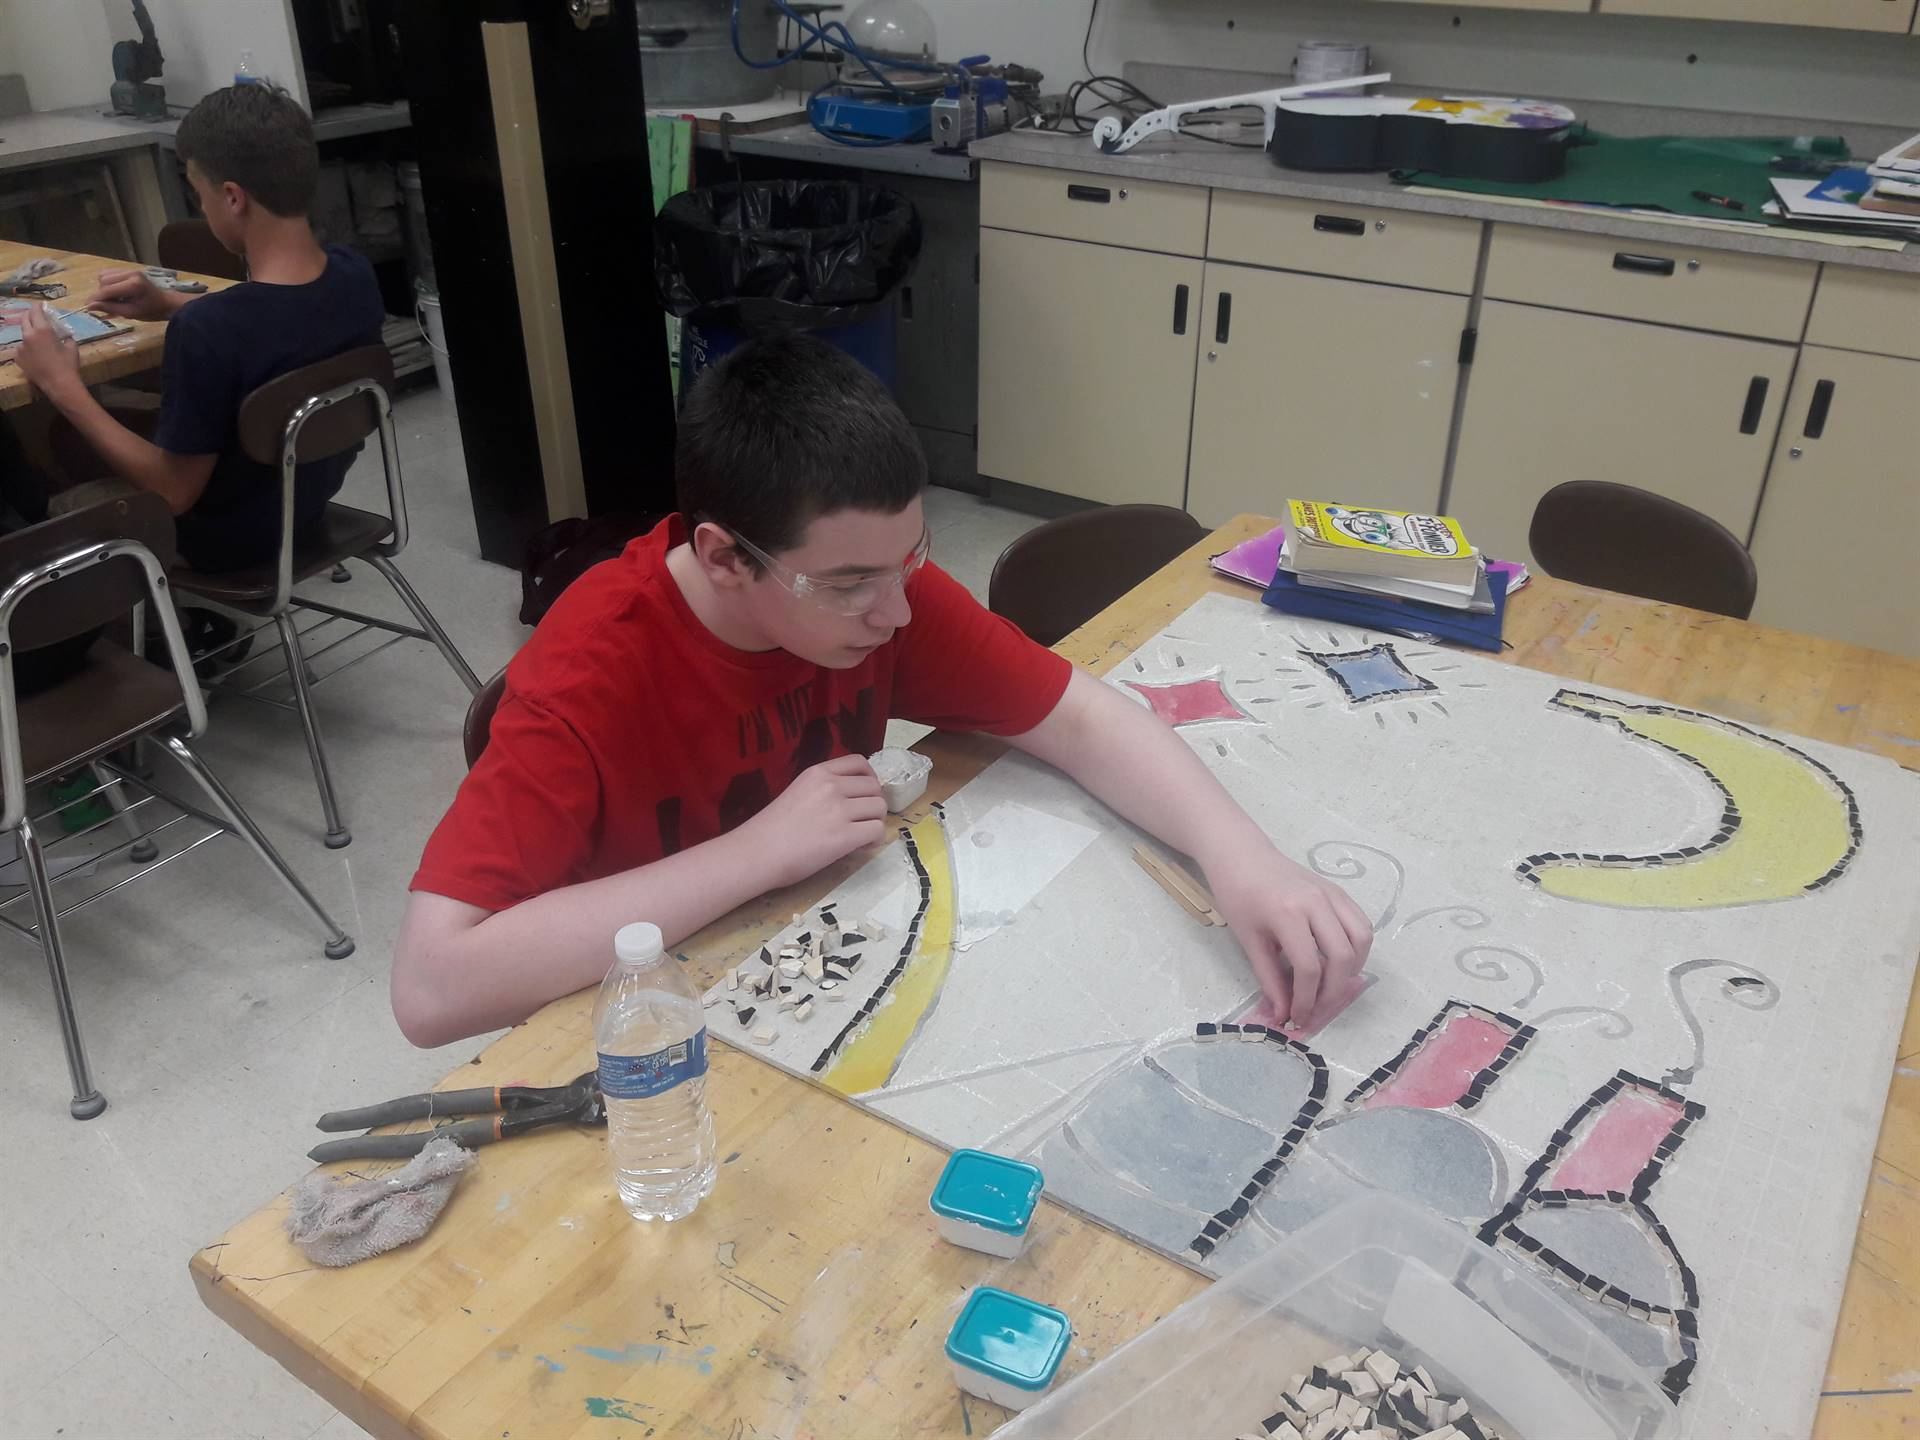 Students are outlining the Mosaic with black tile